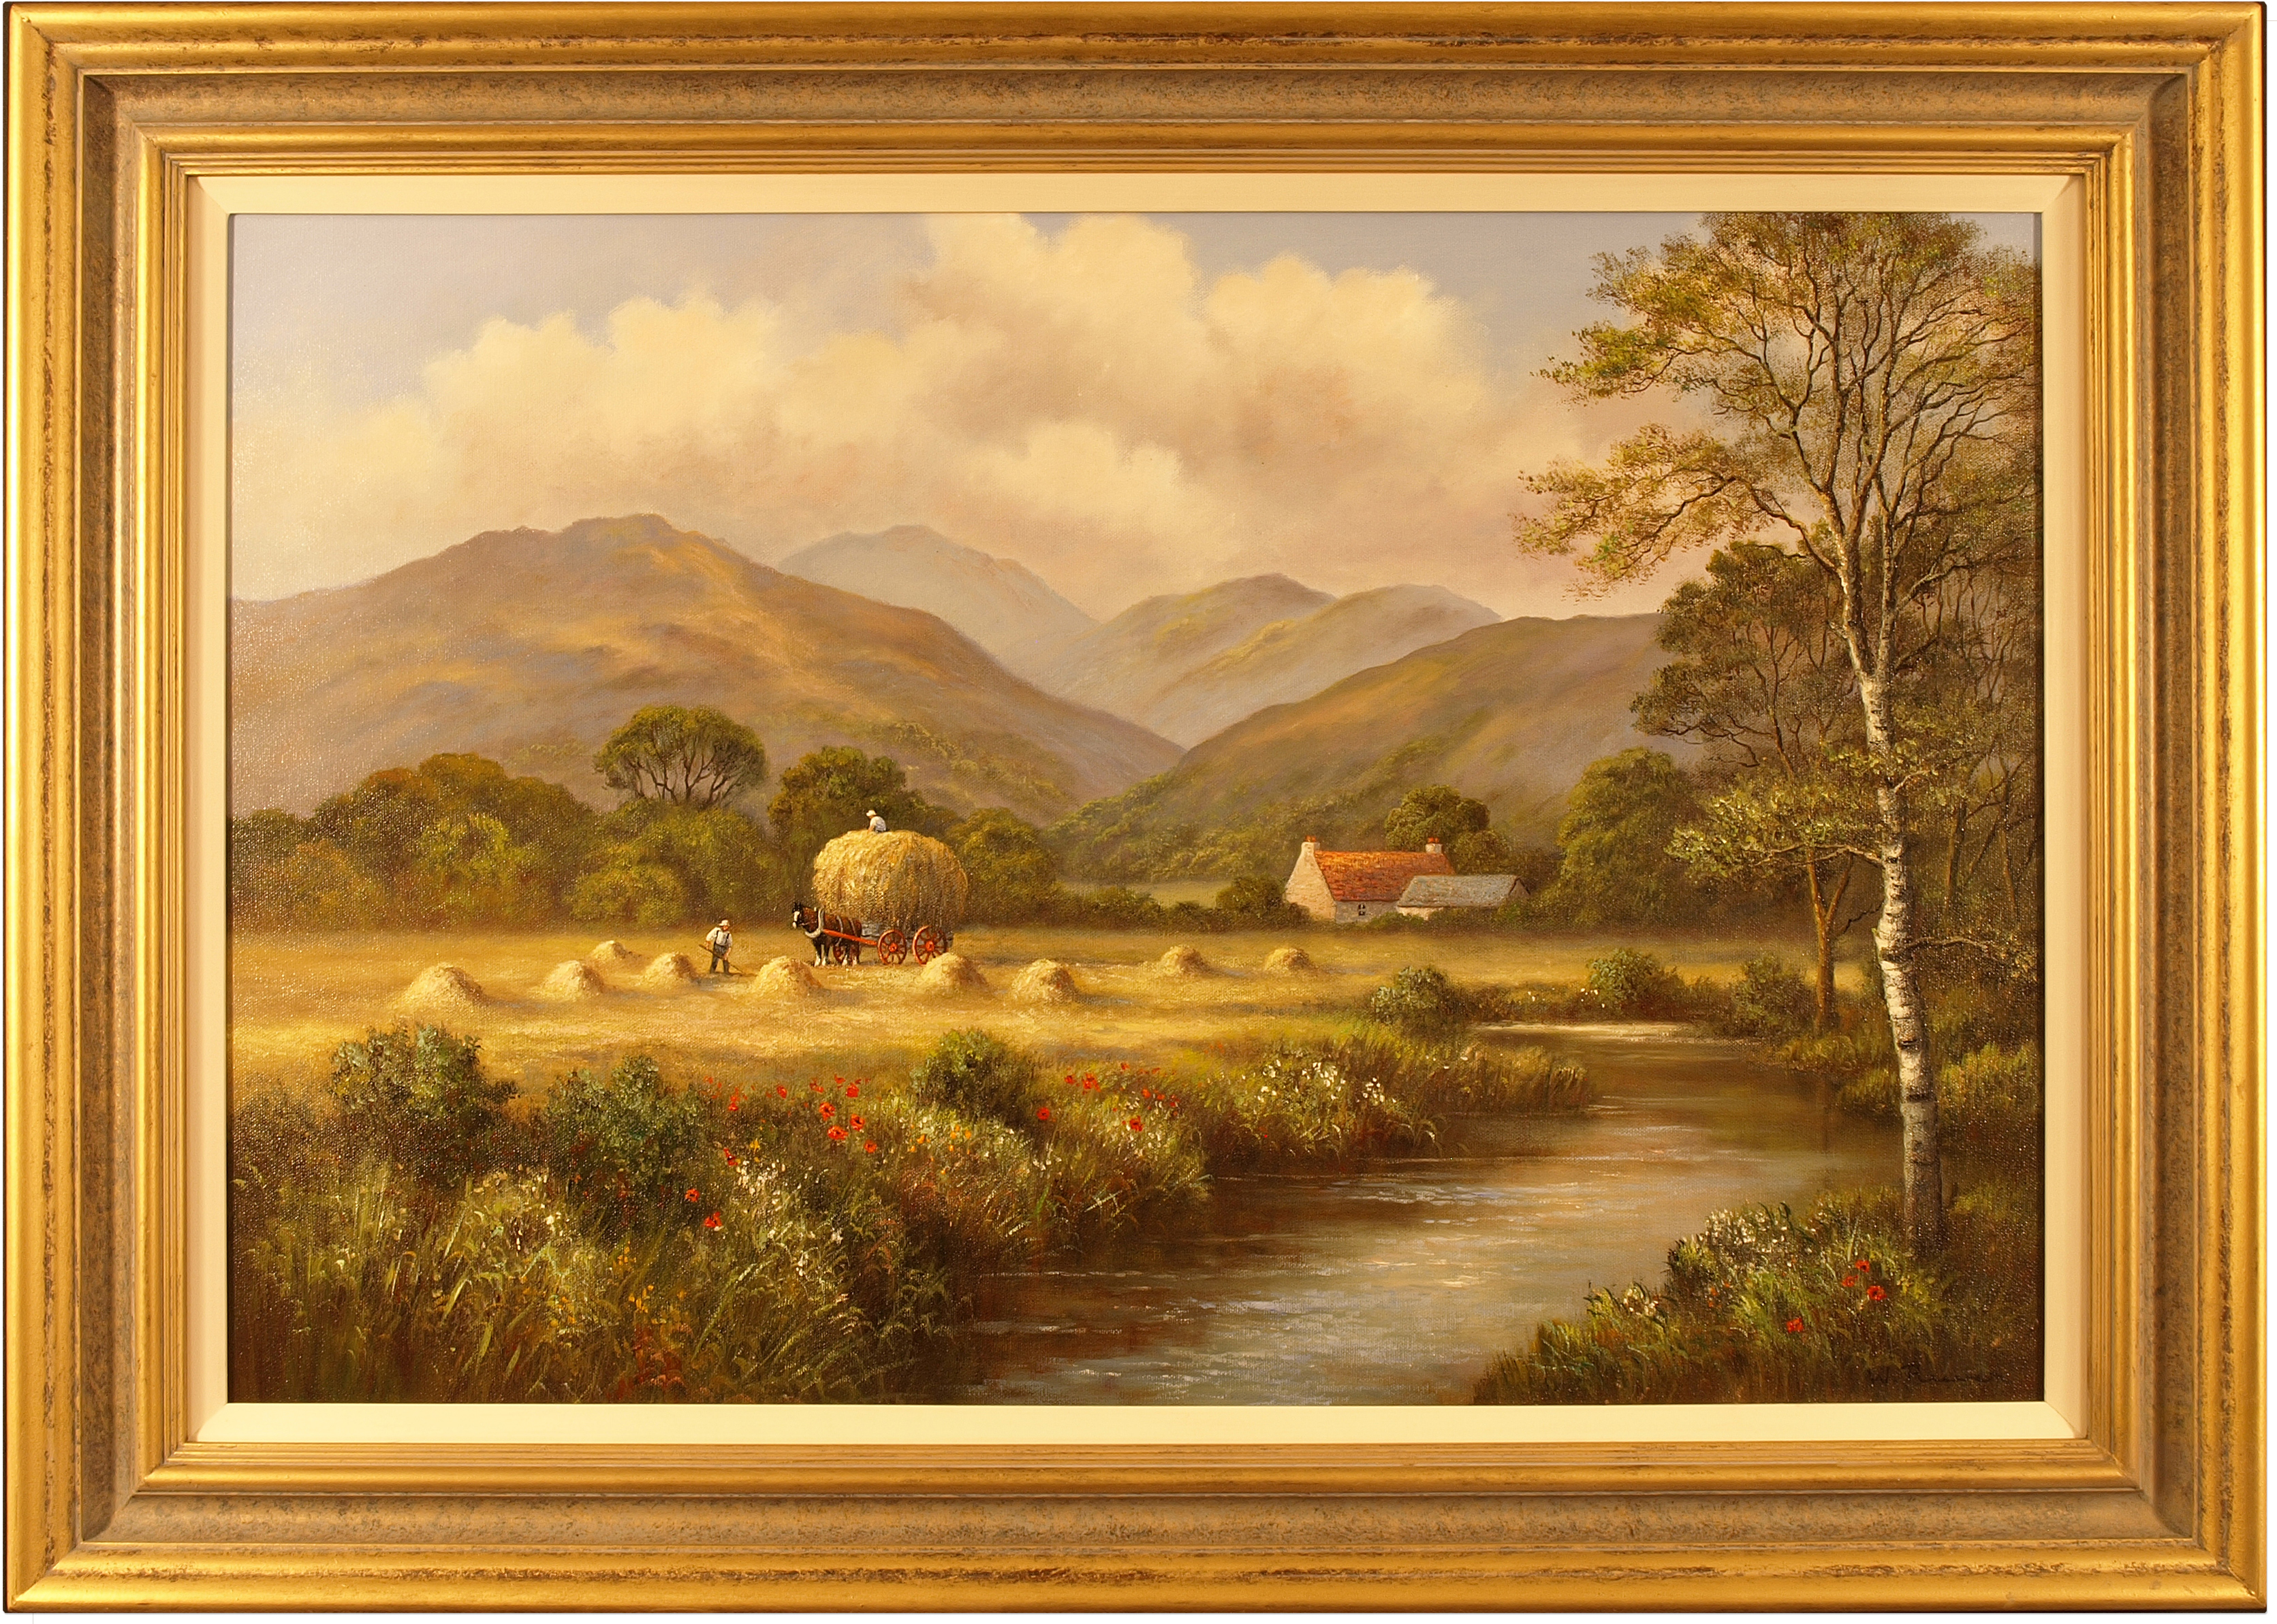 Wendy Reeves, Original oil painting on canvas, Country Scene. Click to enlarge